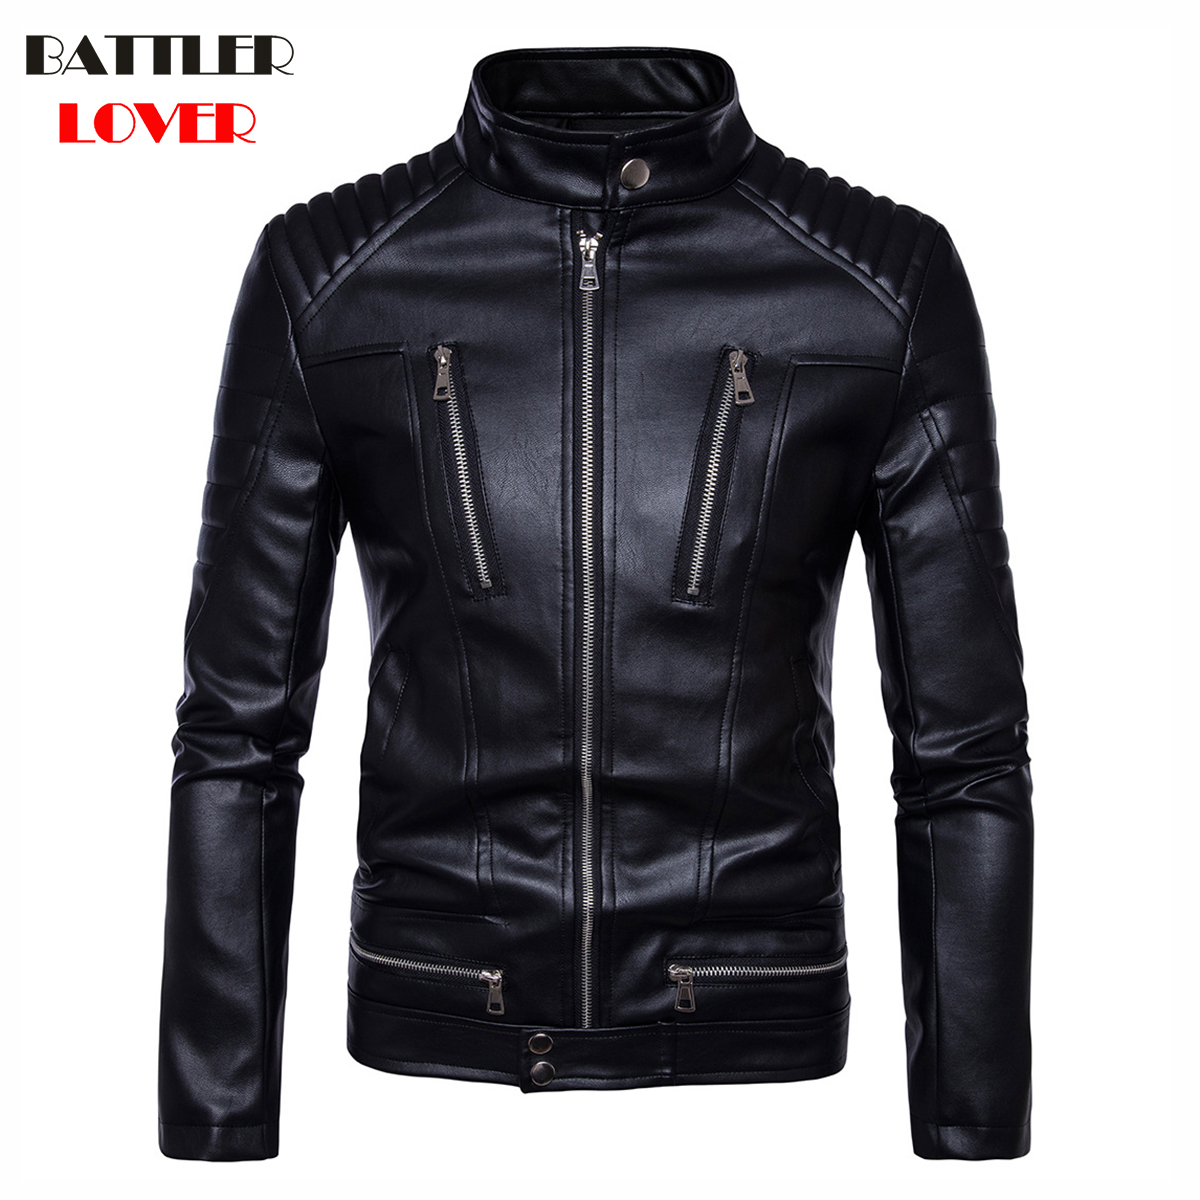 2020 Fashion Leather Jackets Men Bomber Winter Motorcycle Jacket Steampunk Man Leather Windbreaker Moto Biker Coat Hombre New